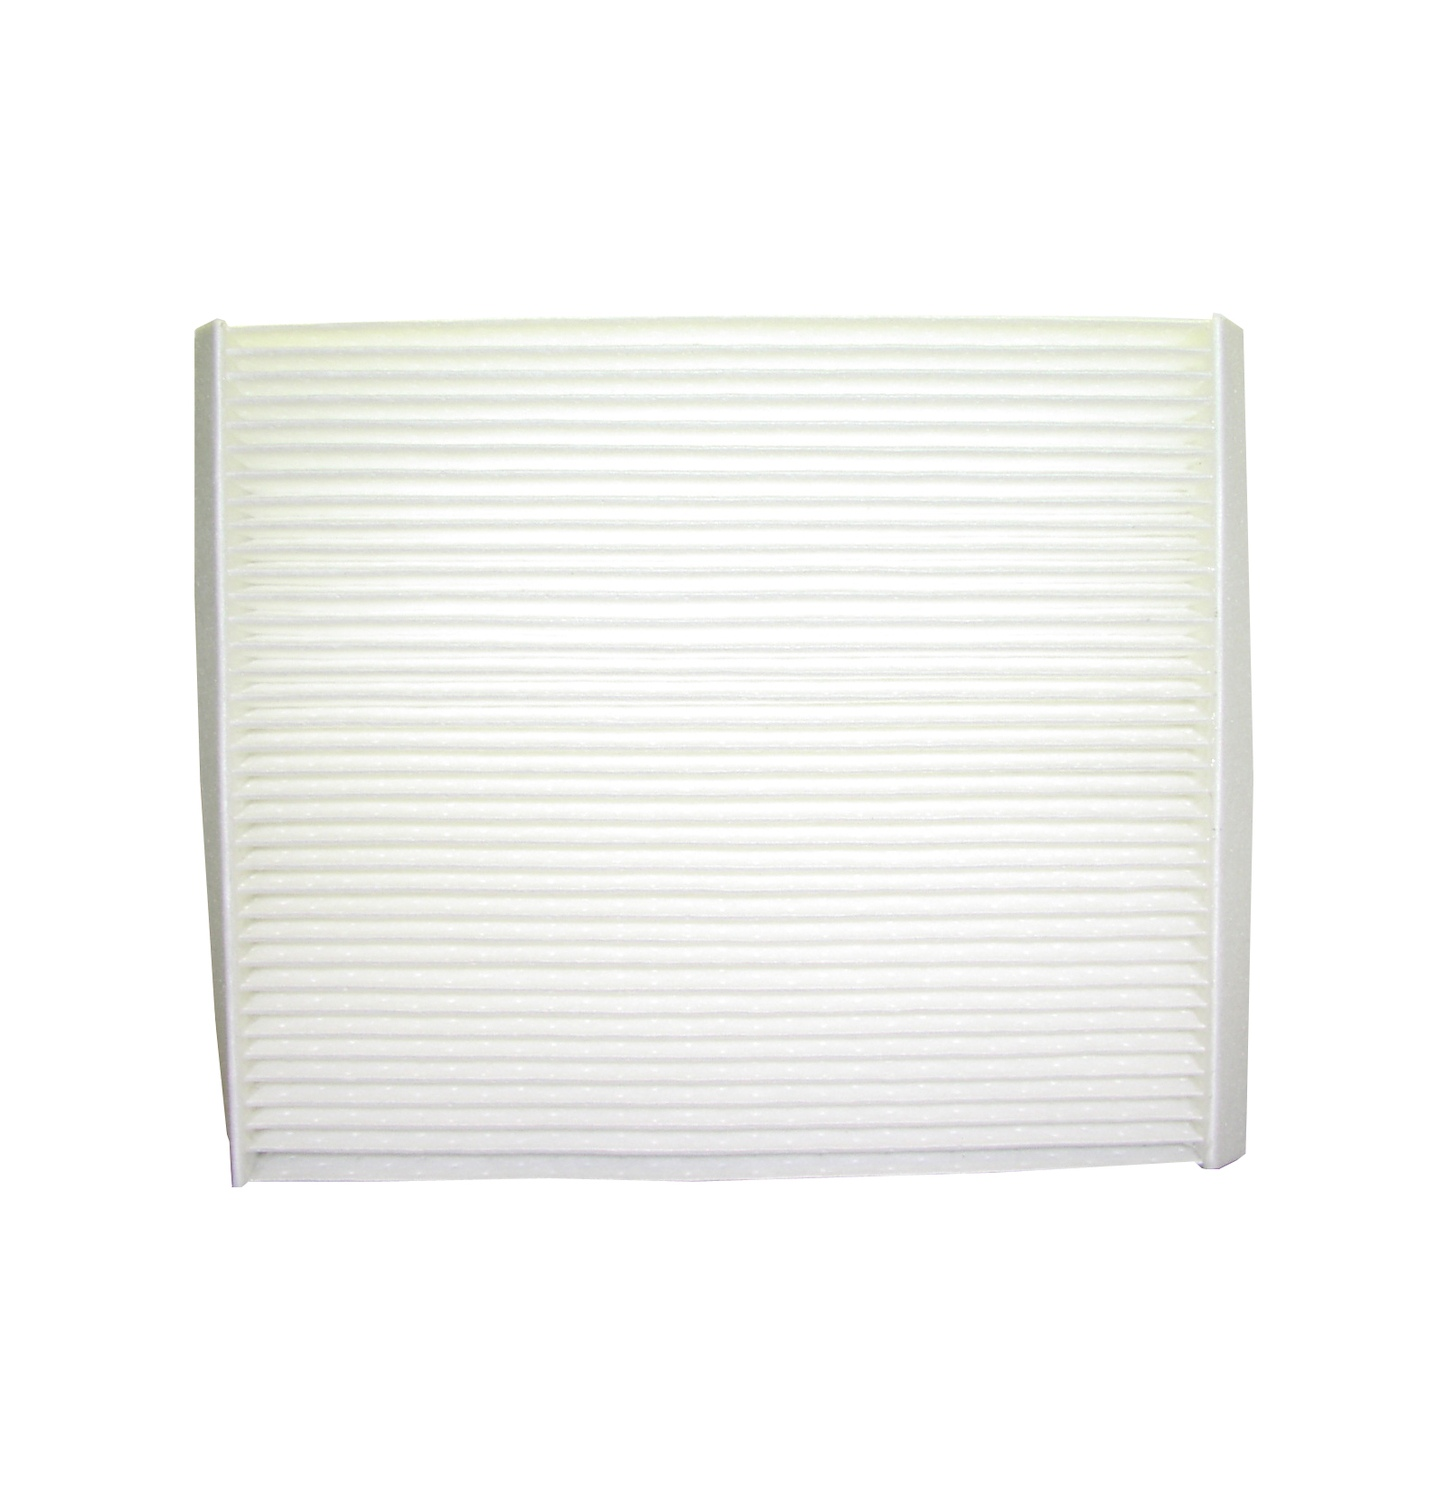 ACDELCO PROFESSIONAL - Cabin Air Filter - DCC CF2233